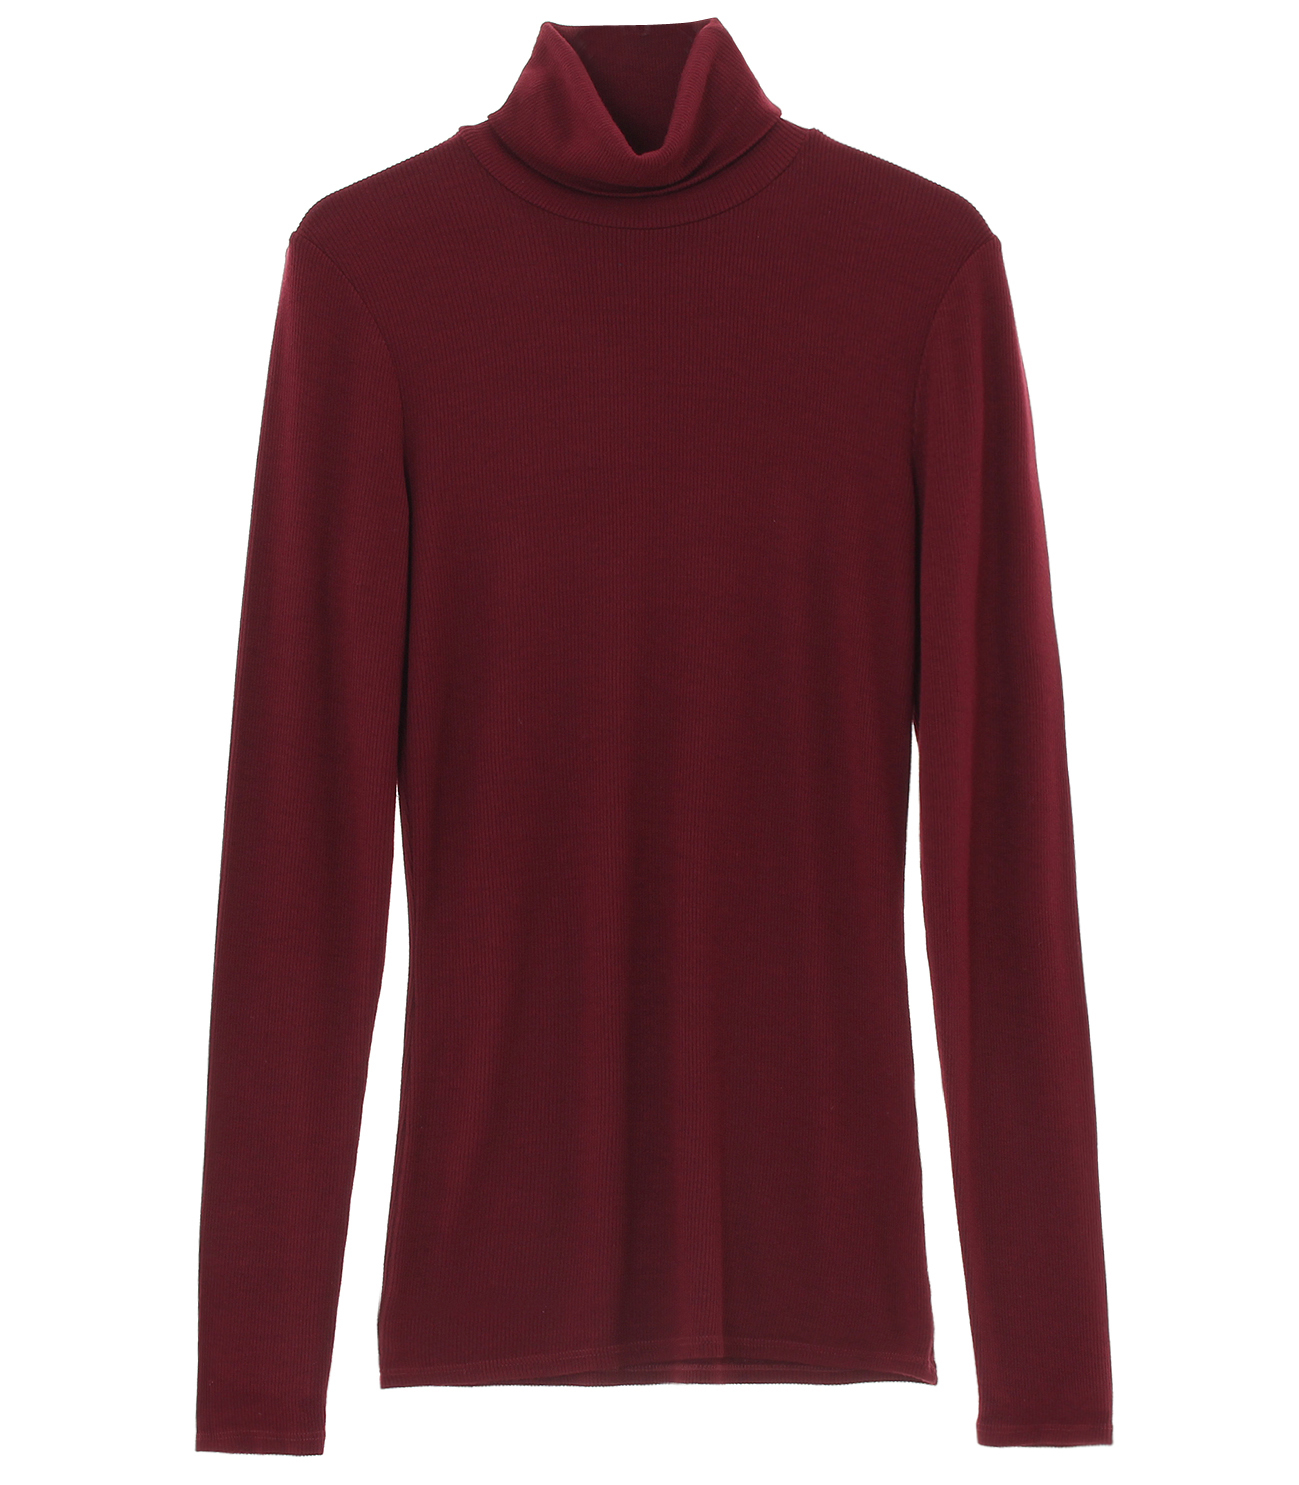 2×1 viscose l/s turtleneck 詳細画像 garnet 1